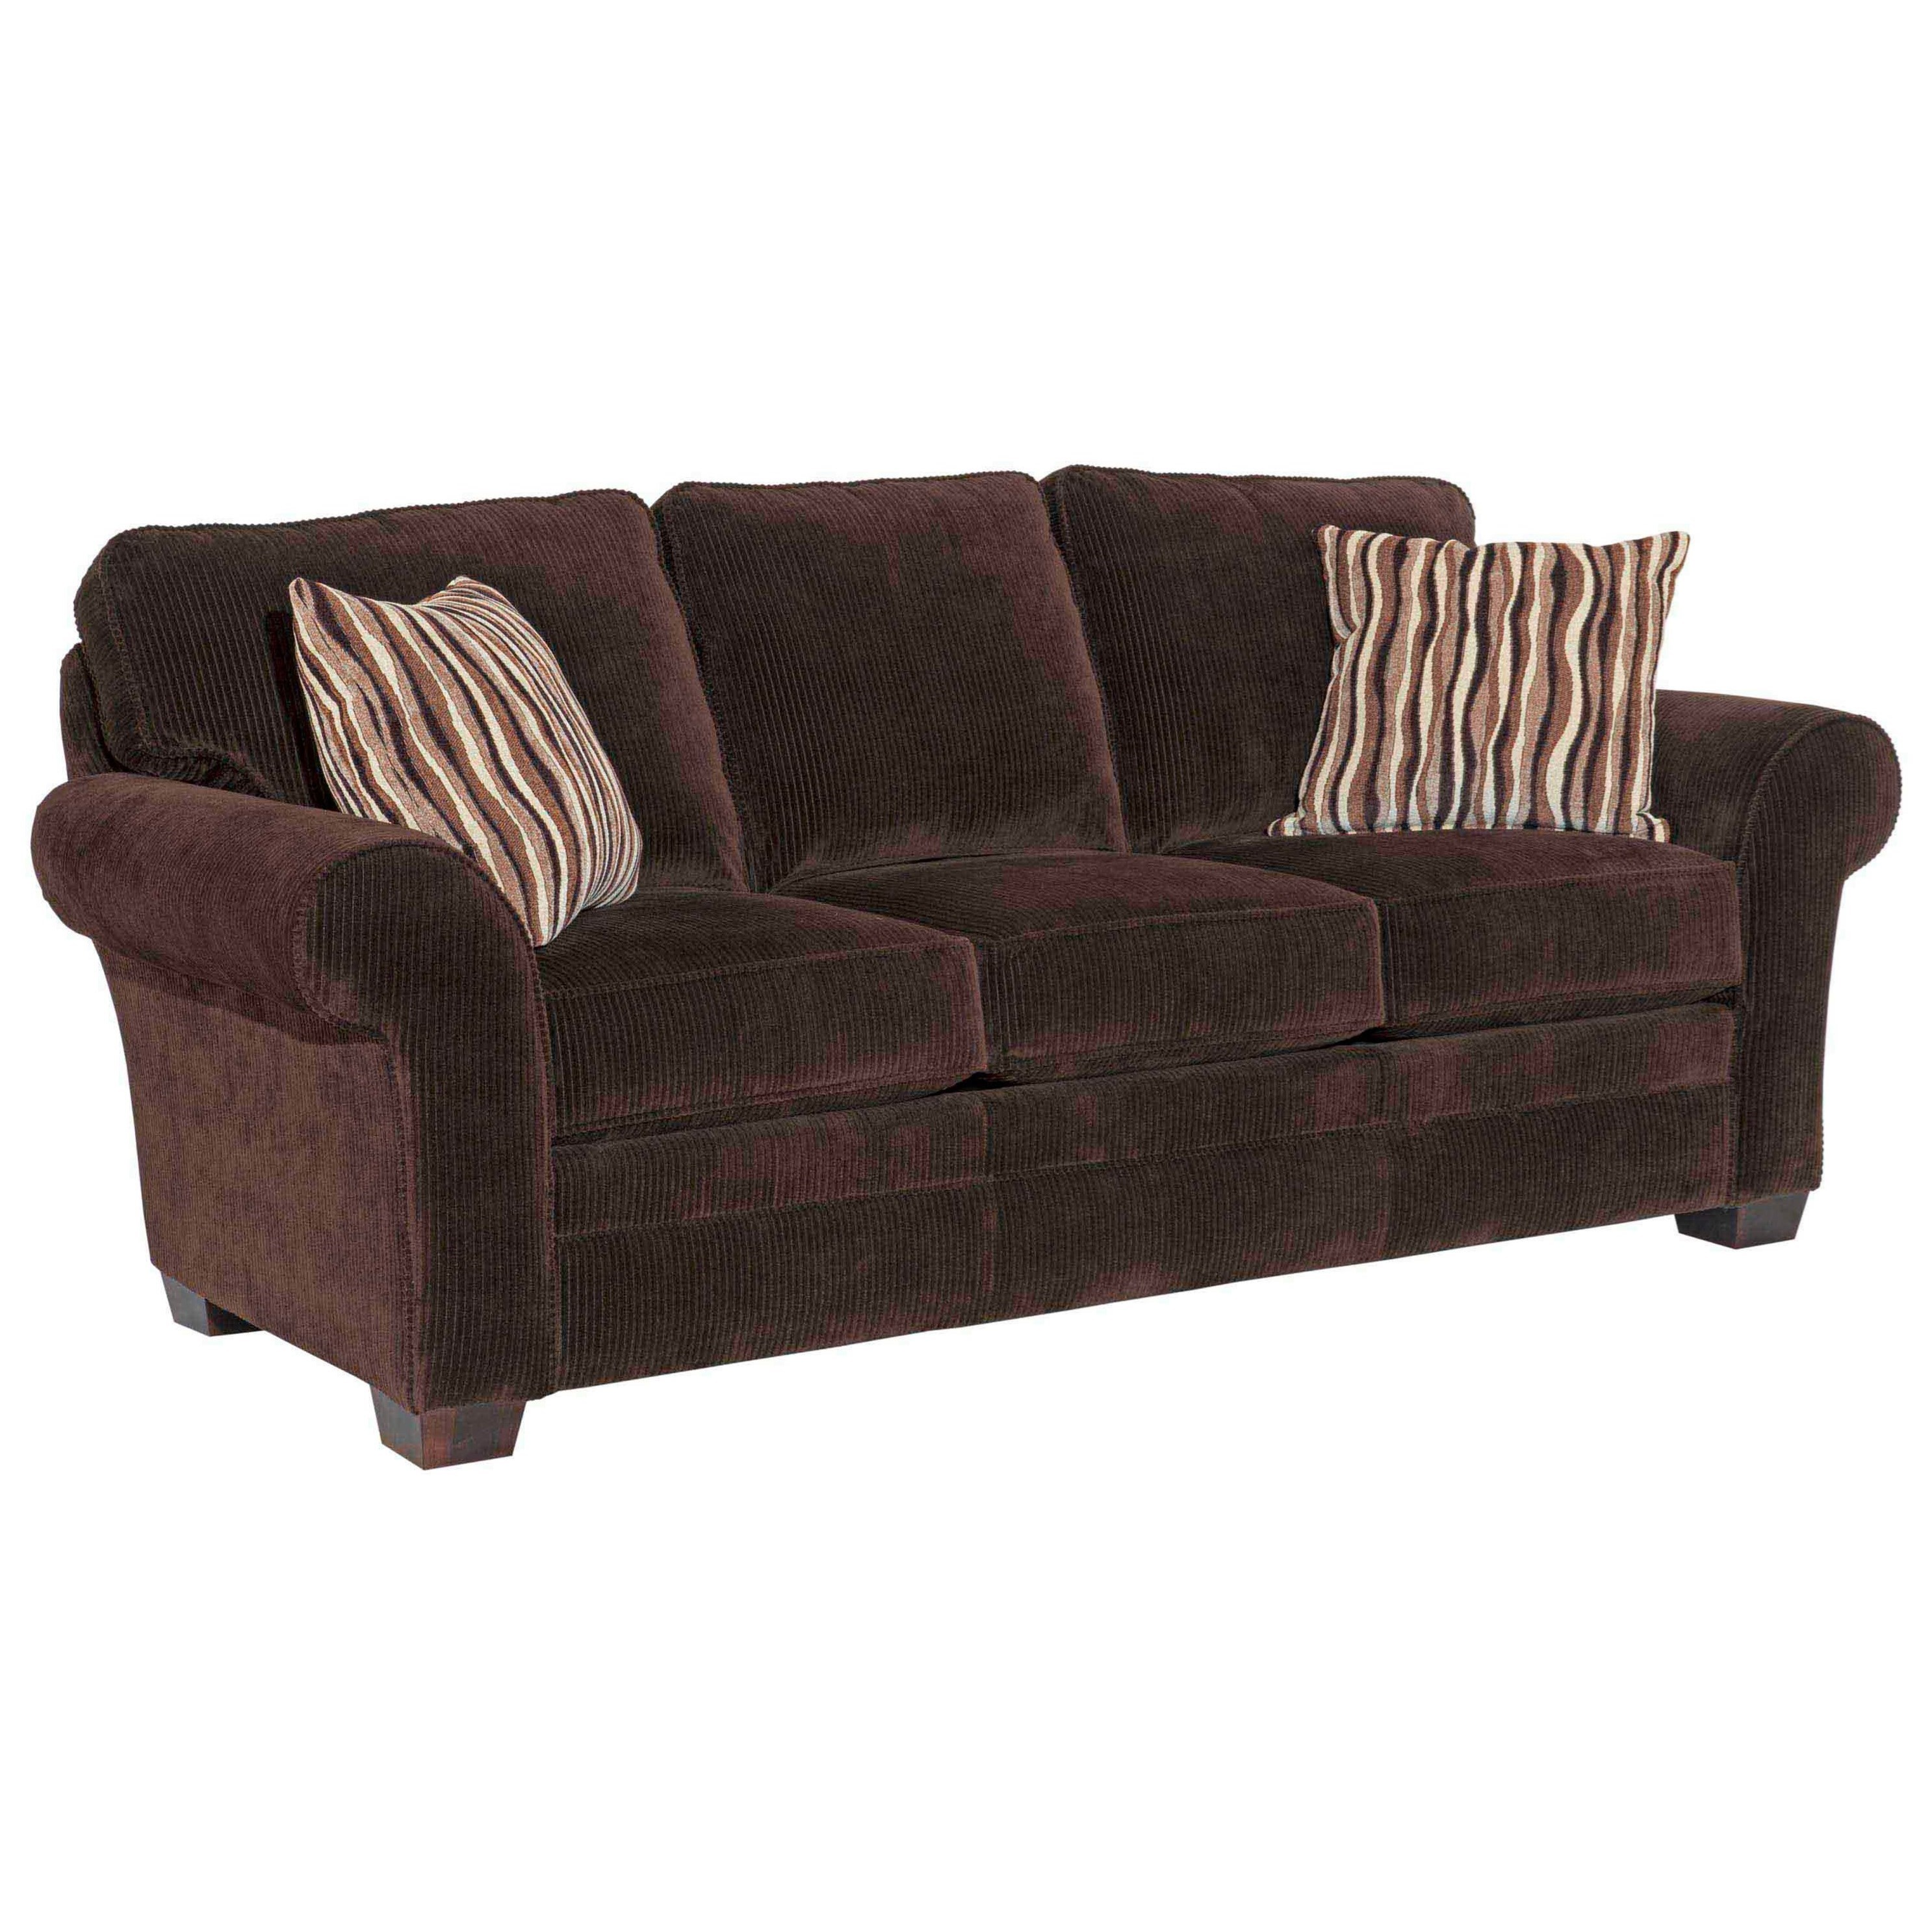 Broyhill Furniture Zachary Queen Size Sleeper - Item Number: 7902-7-7973-87